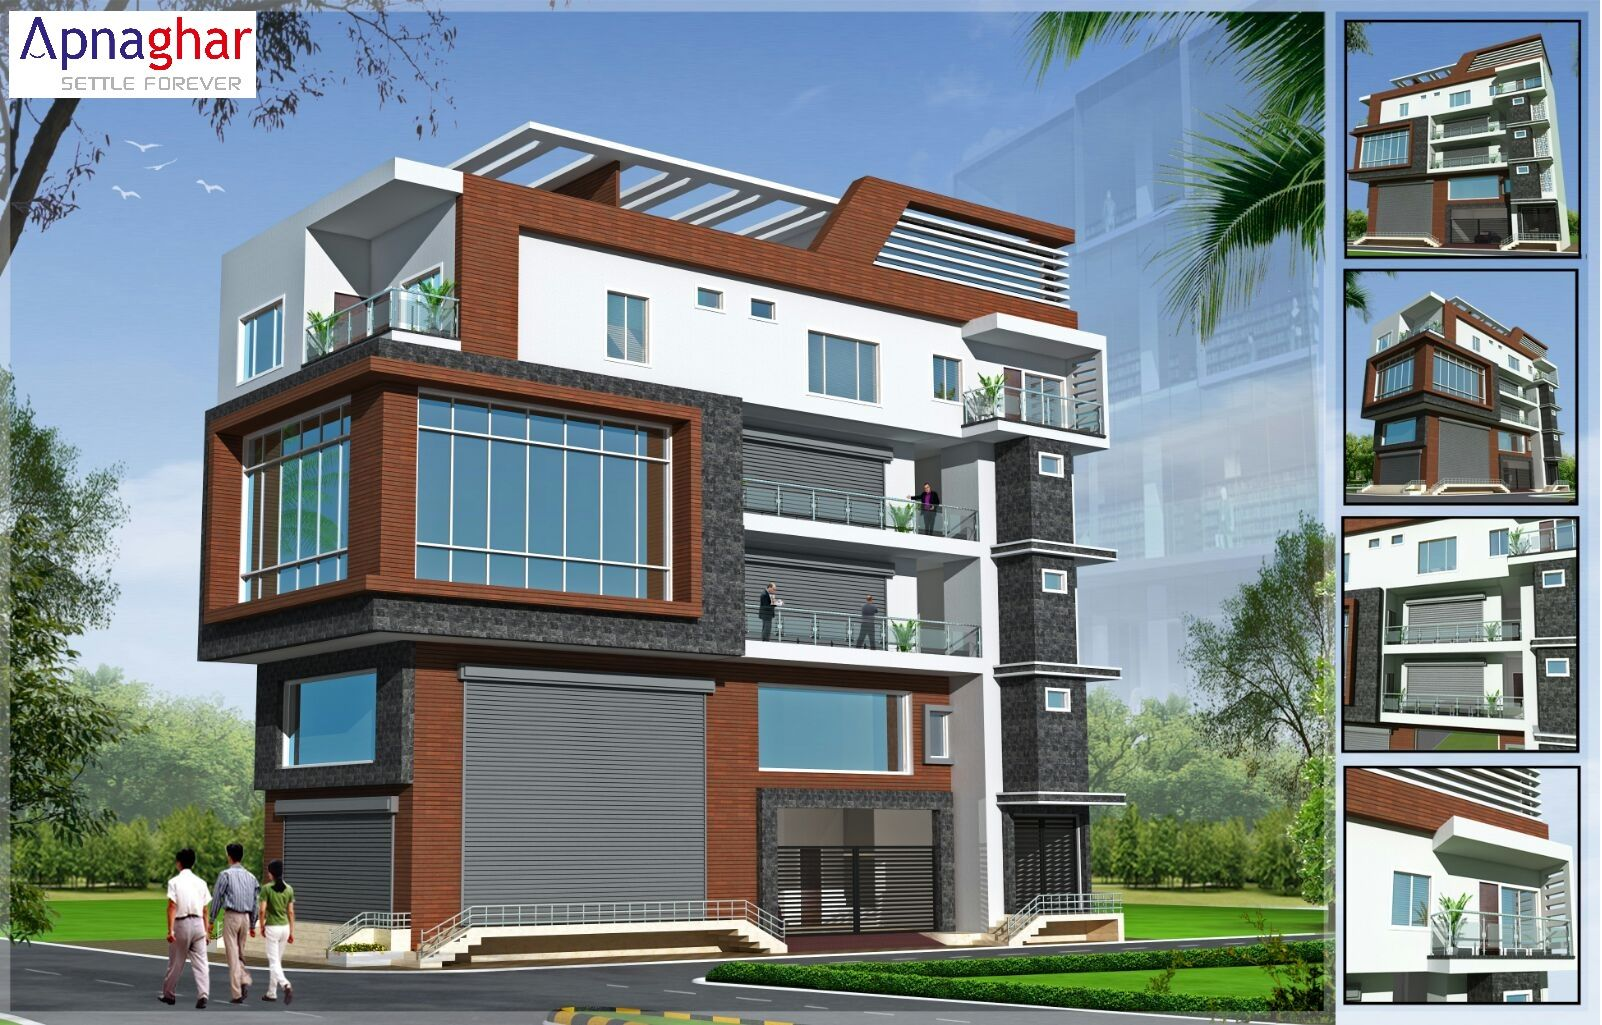 Planning To Build Commercial Plus Residential Building Take Expert Assistance Visit Www Apnaghar Co In Residential House Architecture House Architecture